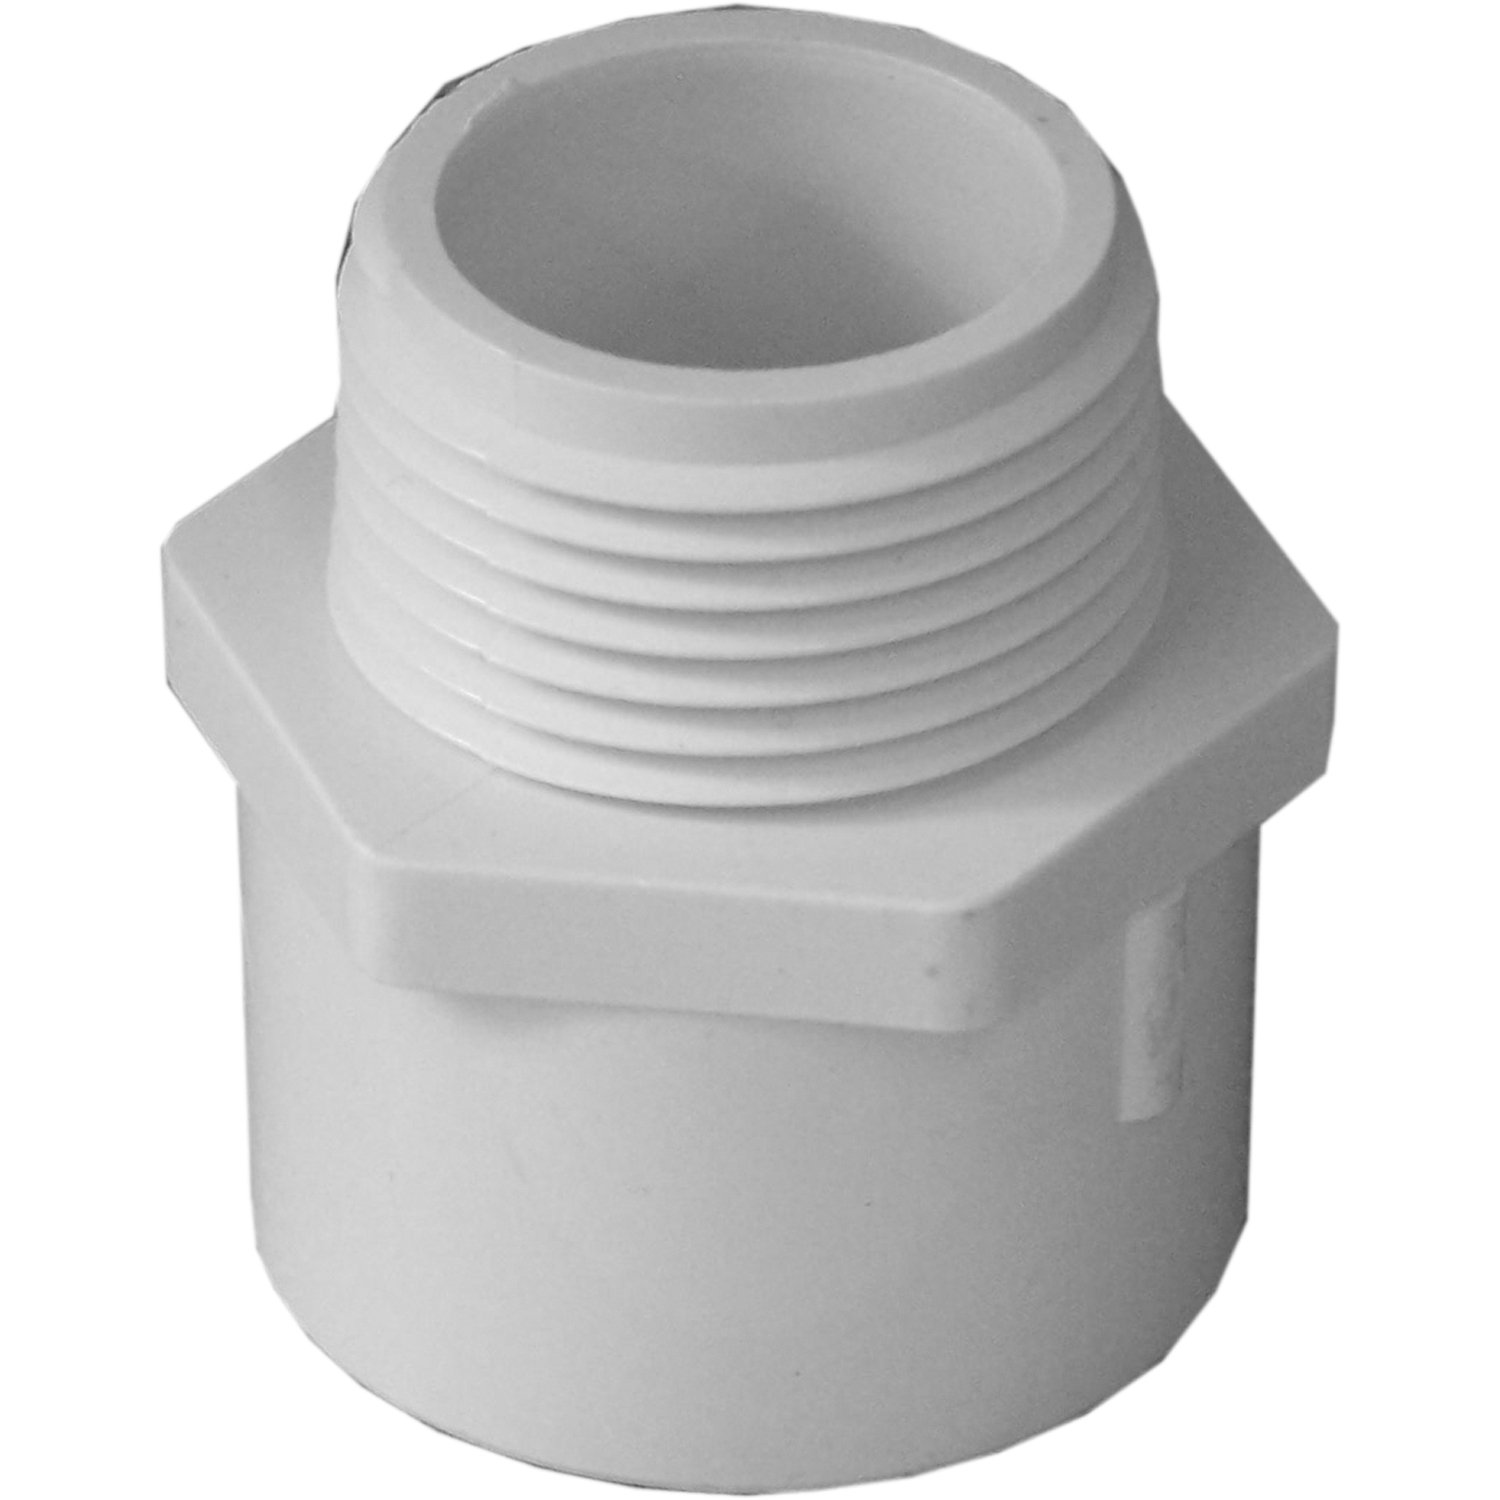 Genova Products 30410CP 1-Inch Male Iron Pipe PVC Pipe Adapter Slip by Male Iron Pipe Thread - 10 Pack